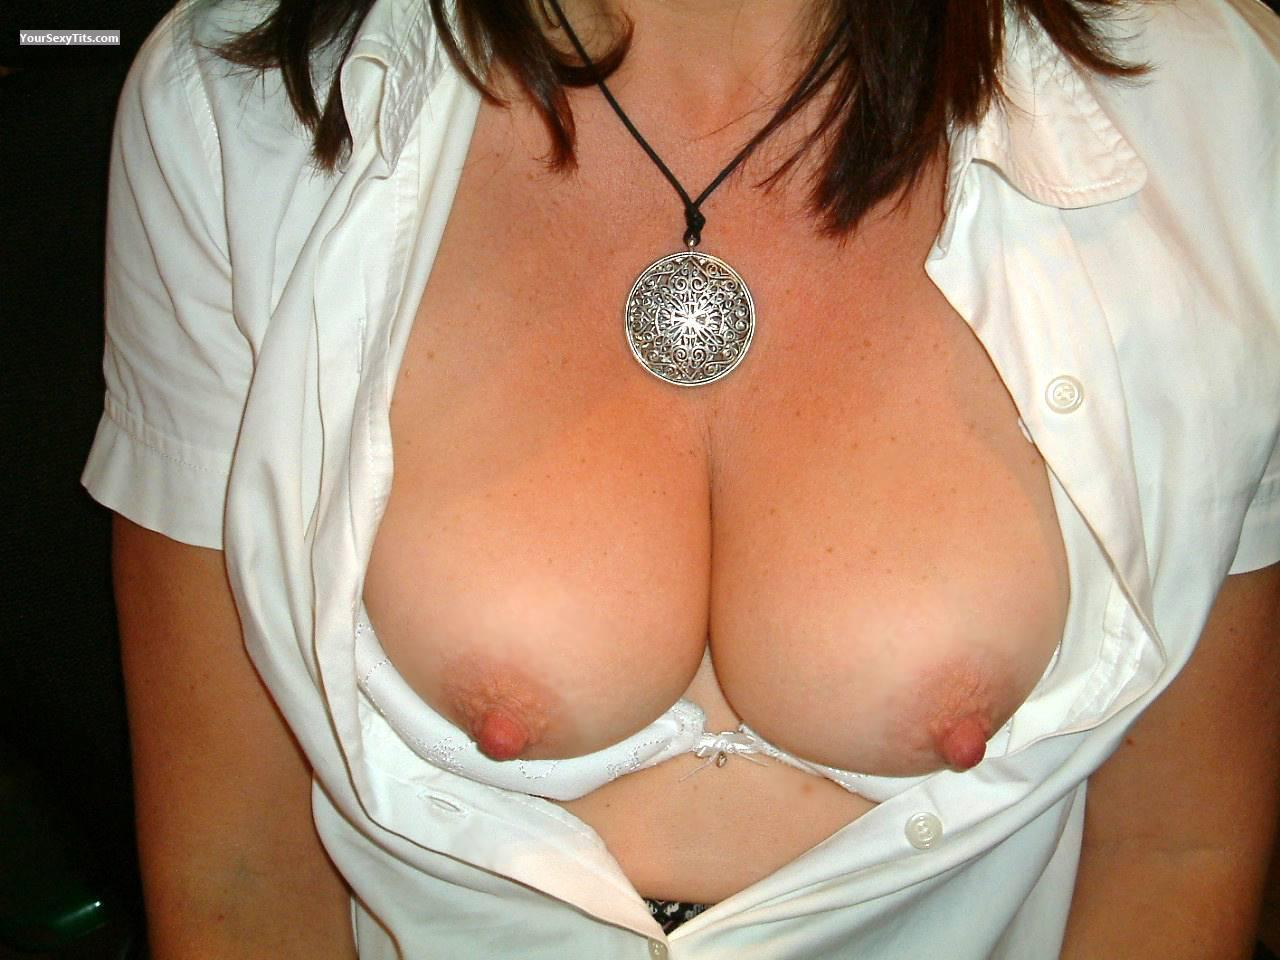 Tit Flash: Medium Tits - Topless from United Kingdom